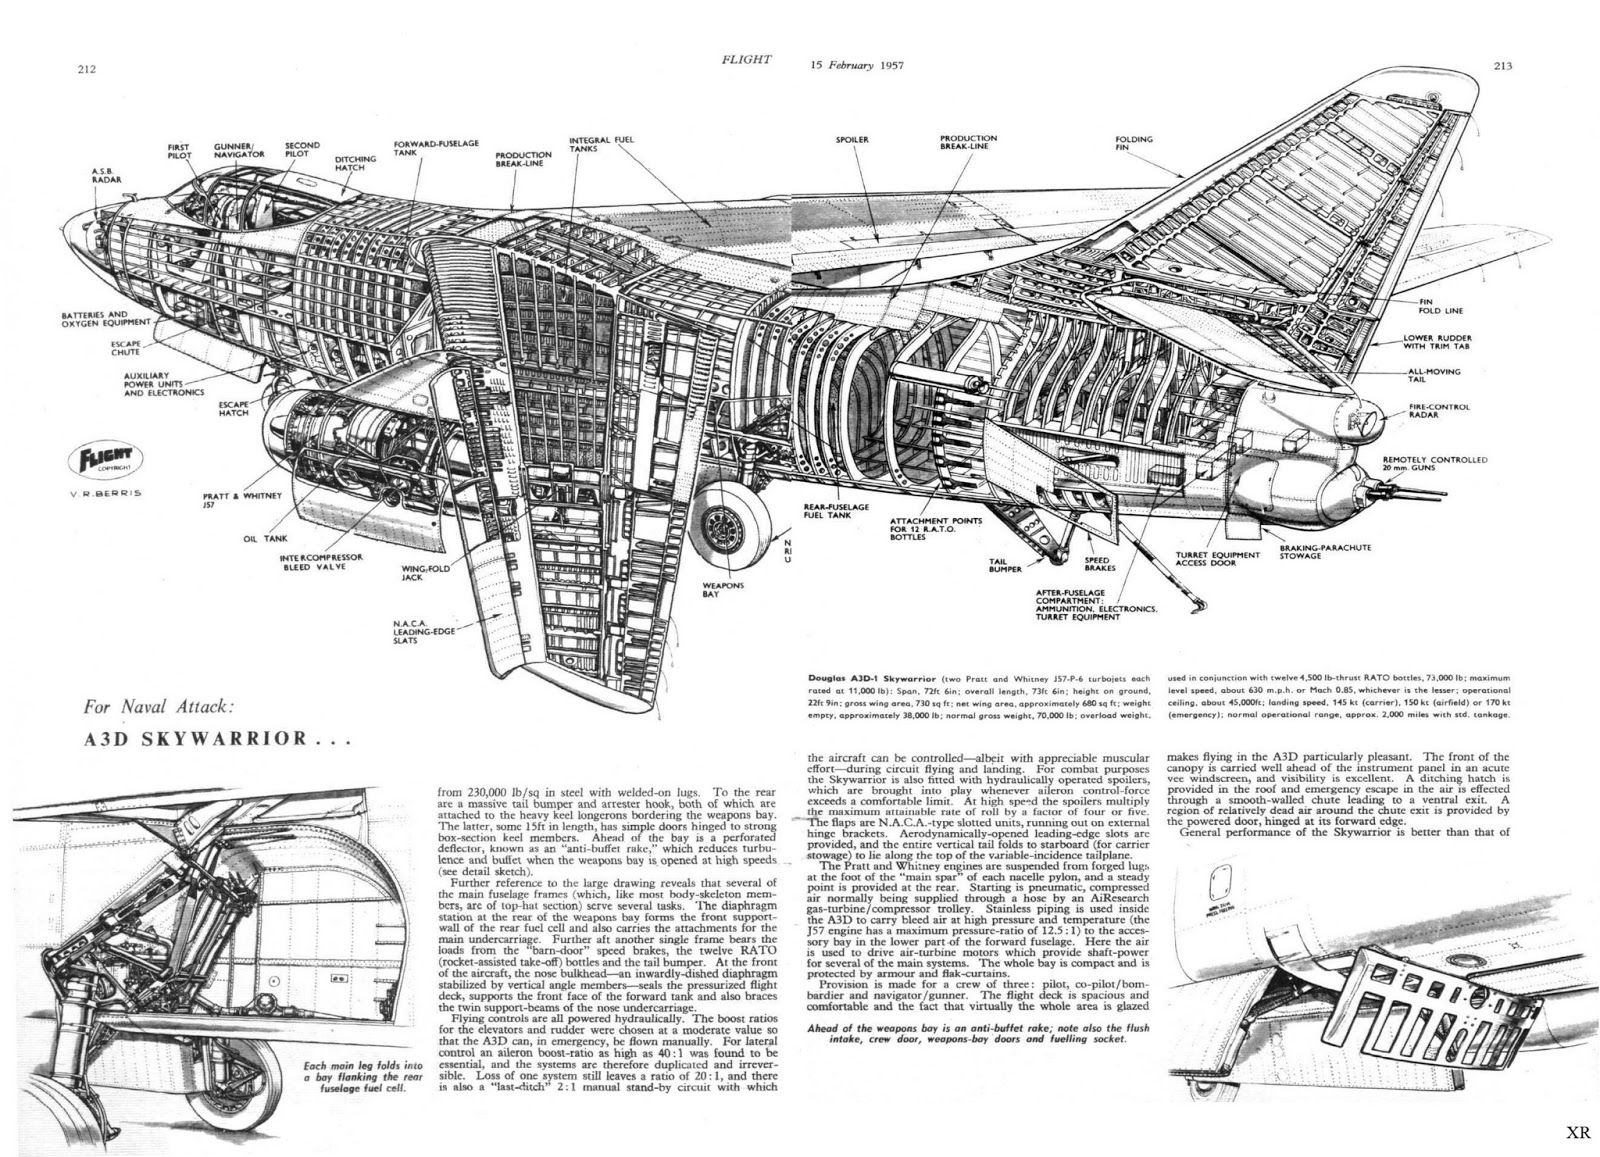 Pin By Muirfield Dugan On Aircraft Cutaways